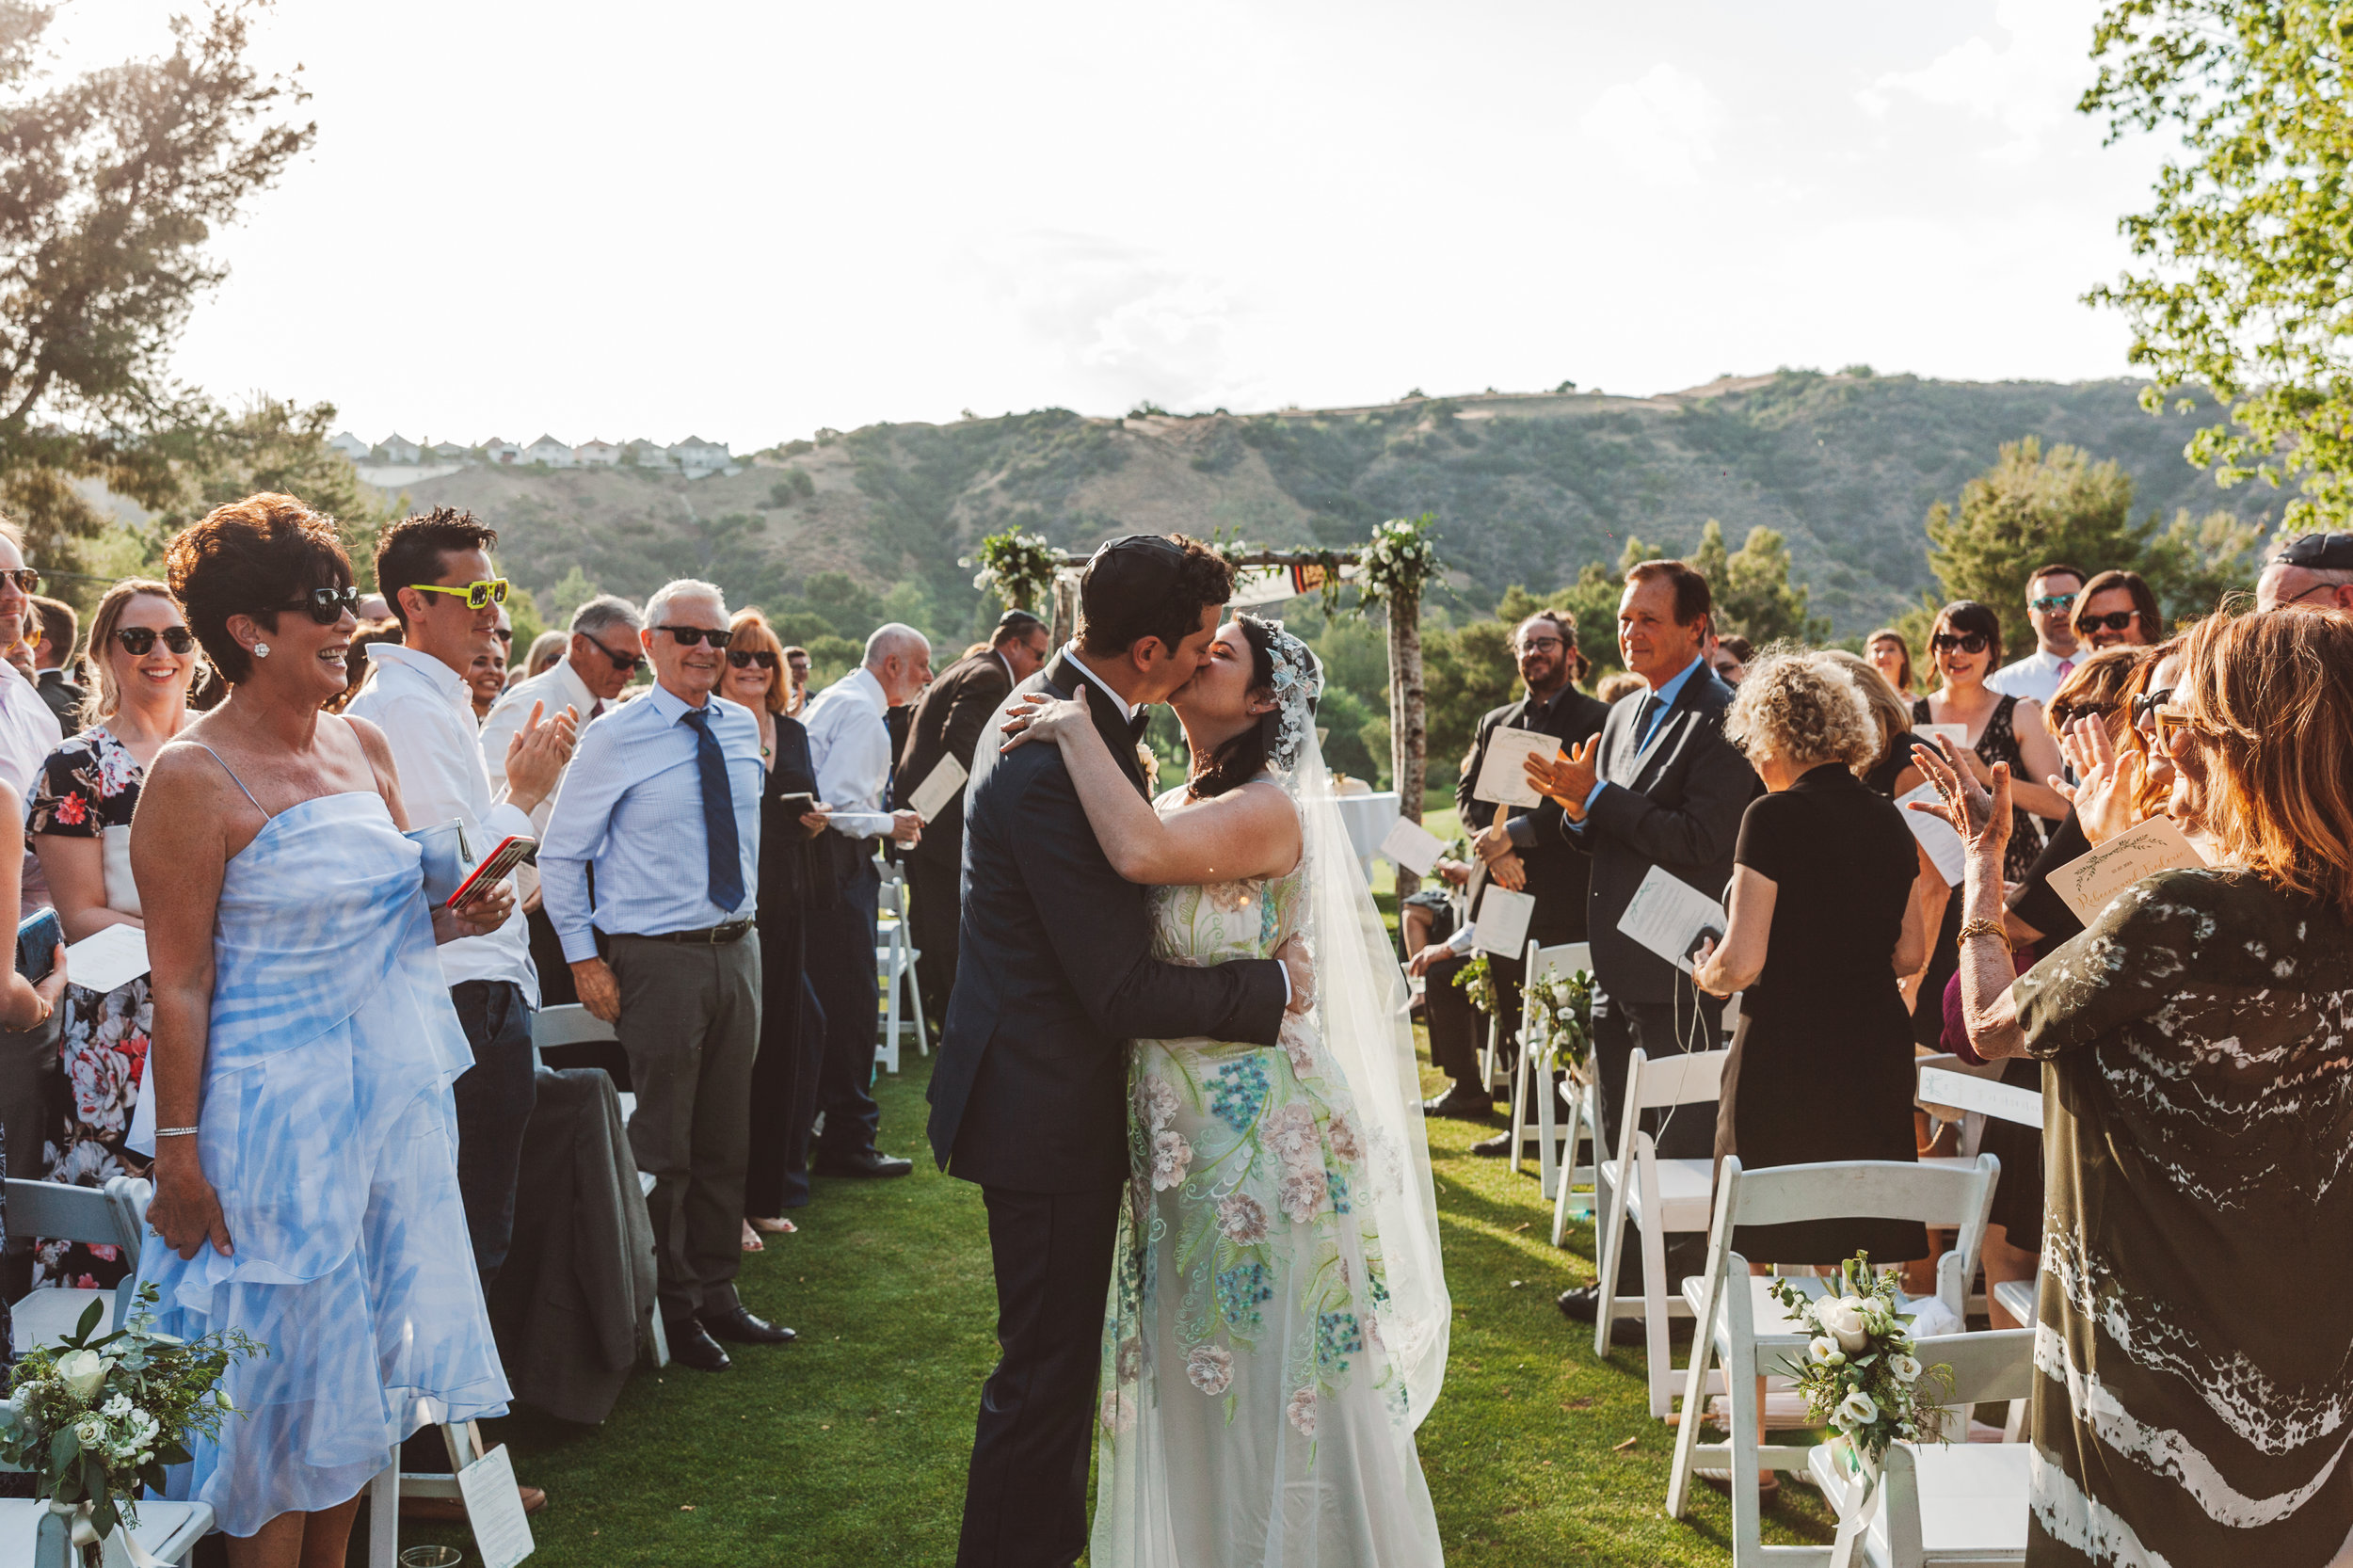 Recessional,  Wedding Ceremony at Mountaingate Country Club, Los Angeles. Photographer:  Steve Cowell